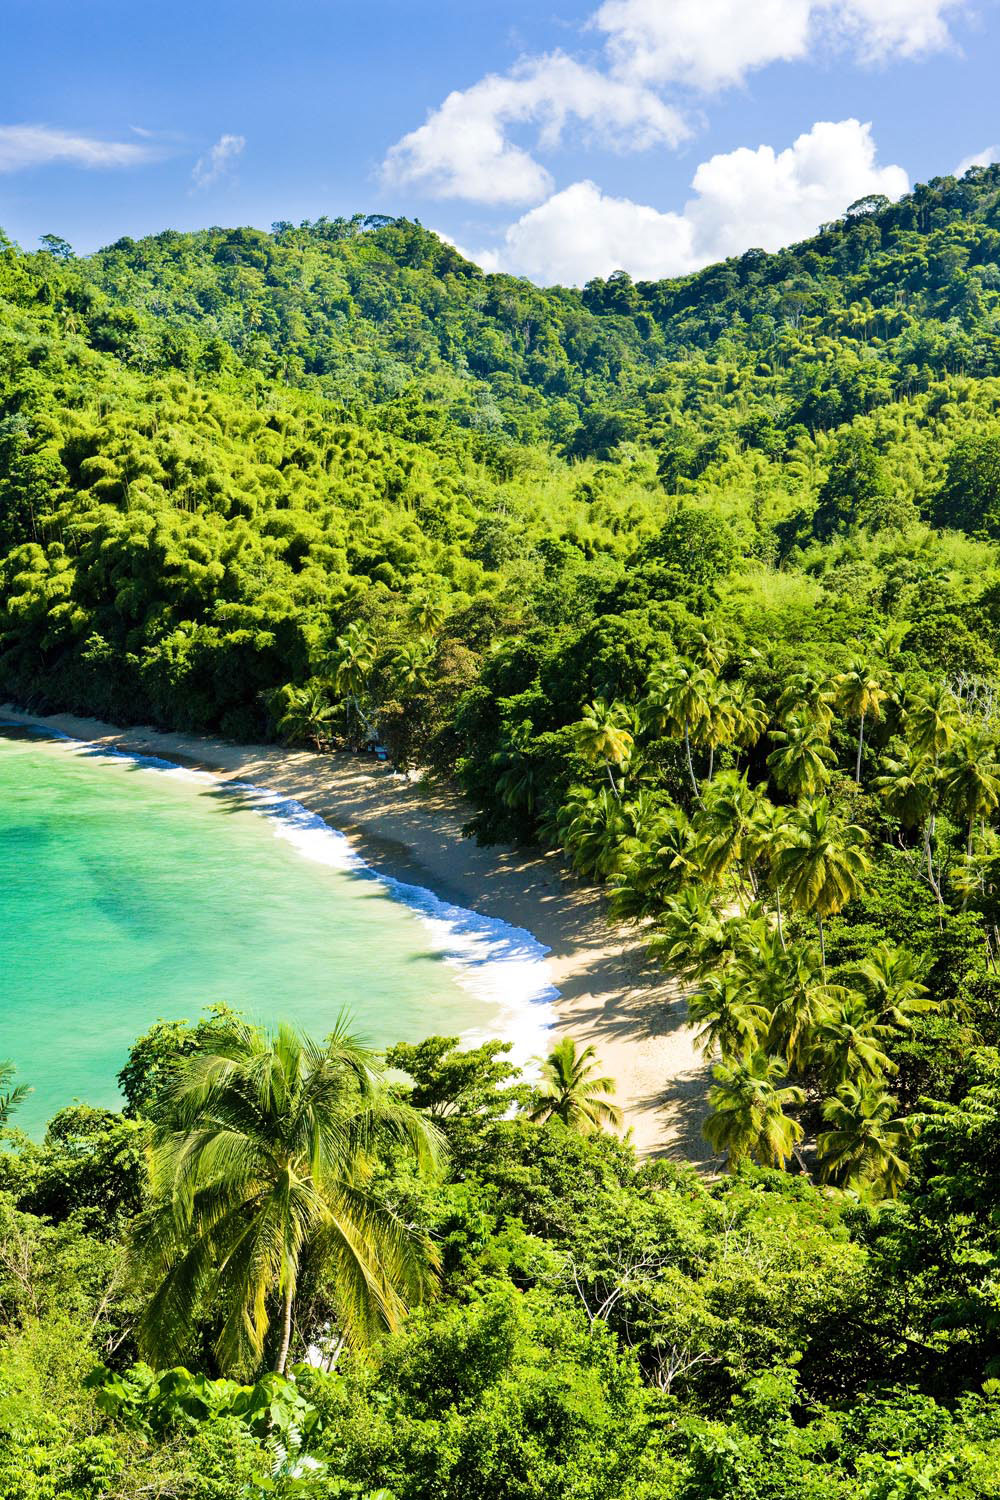 Englishman's Bay on Tobago's sheltered leeward coast. Photograph by Richard Seemik/Shutterstock.com